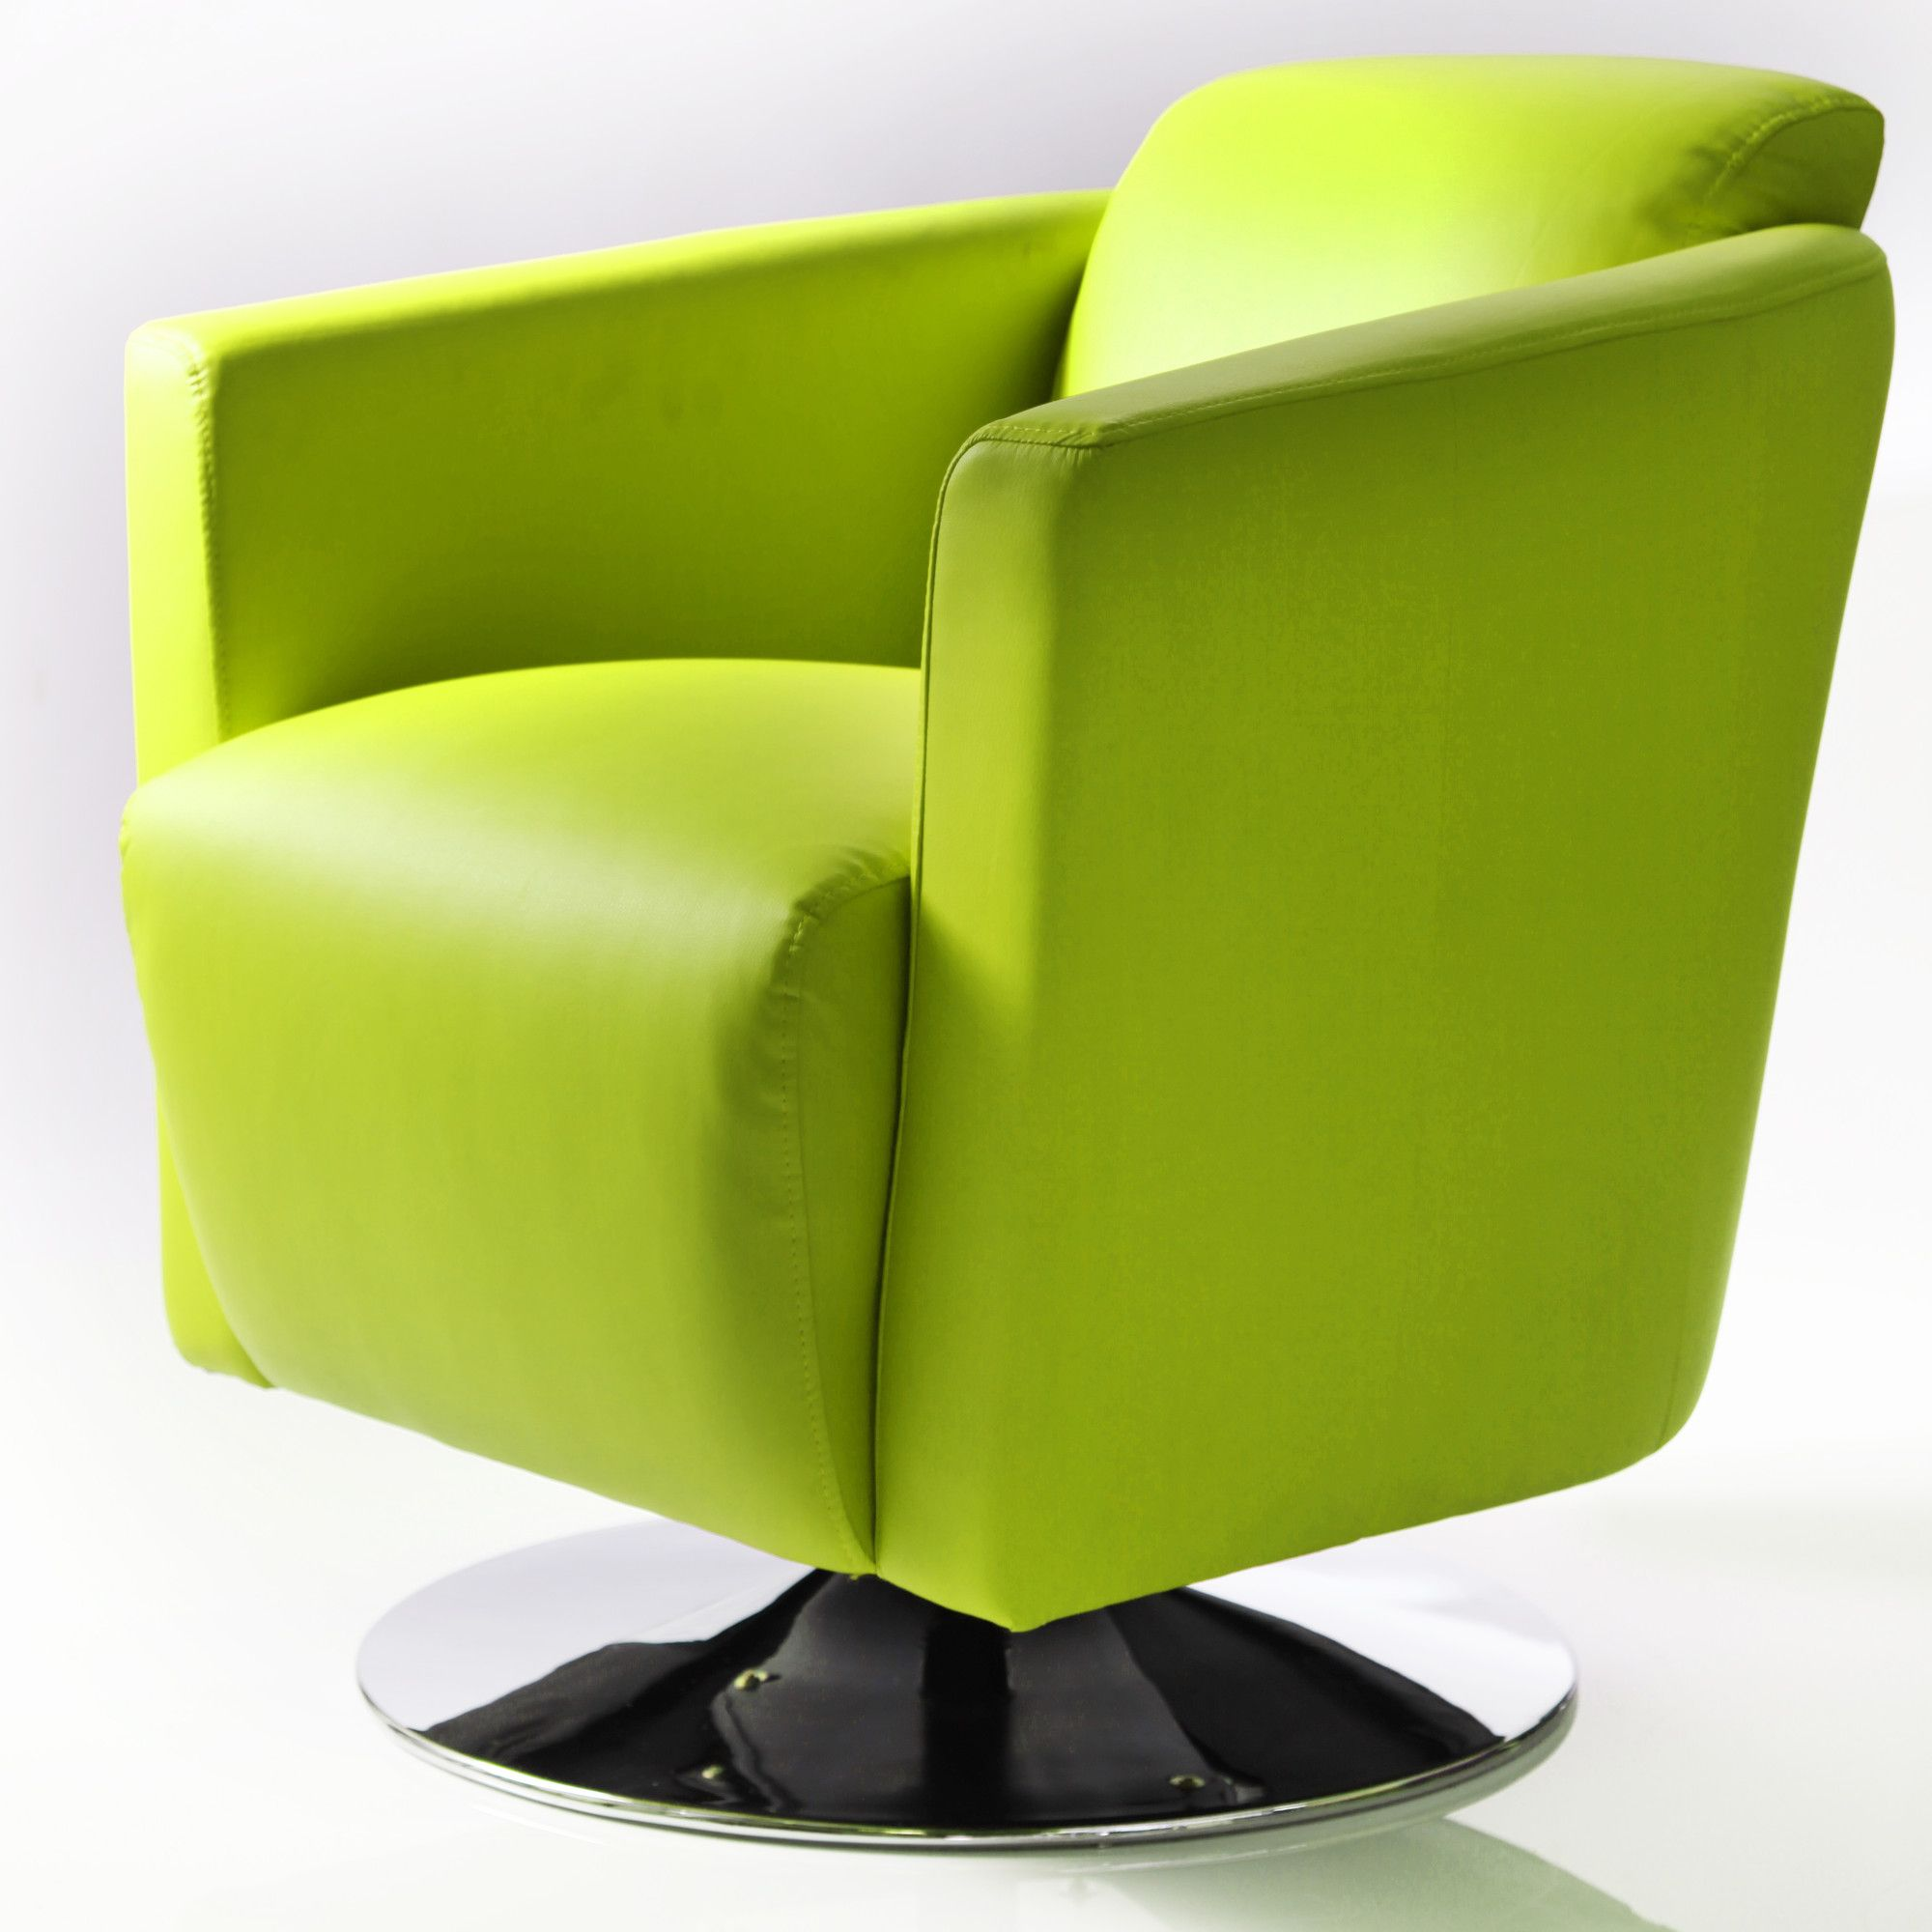 Wilkinson Furniture Pluto Swivel Tub chair - Avocado at Tesco Direct